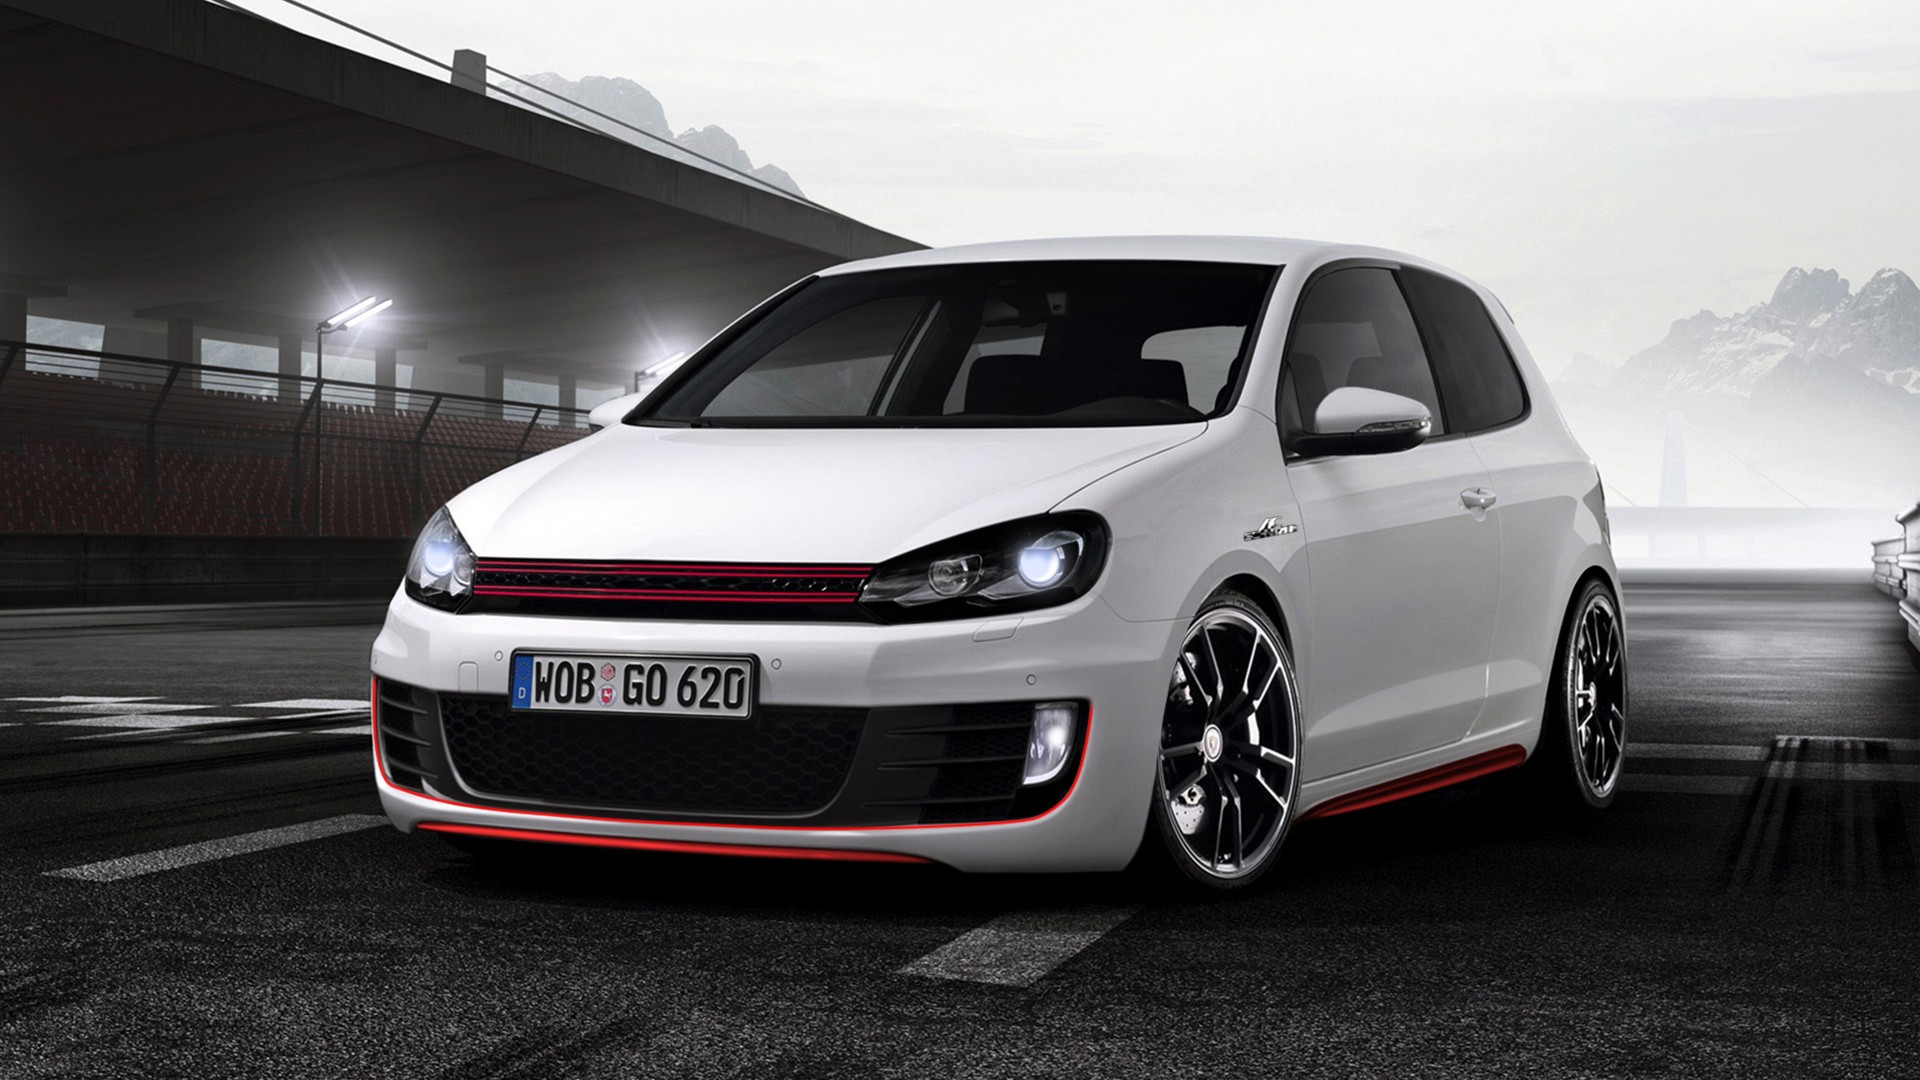 Volkswagen Golf Wallpapers Hd - HD Desktop Wallpapers